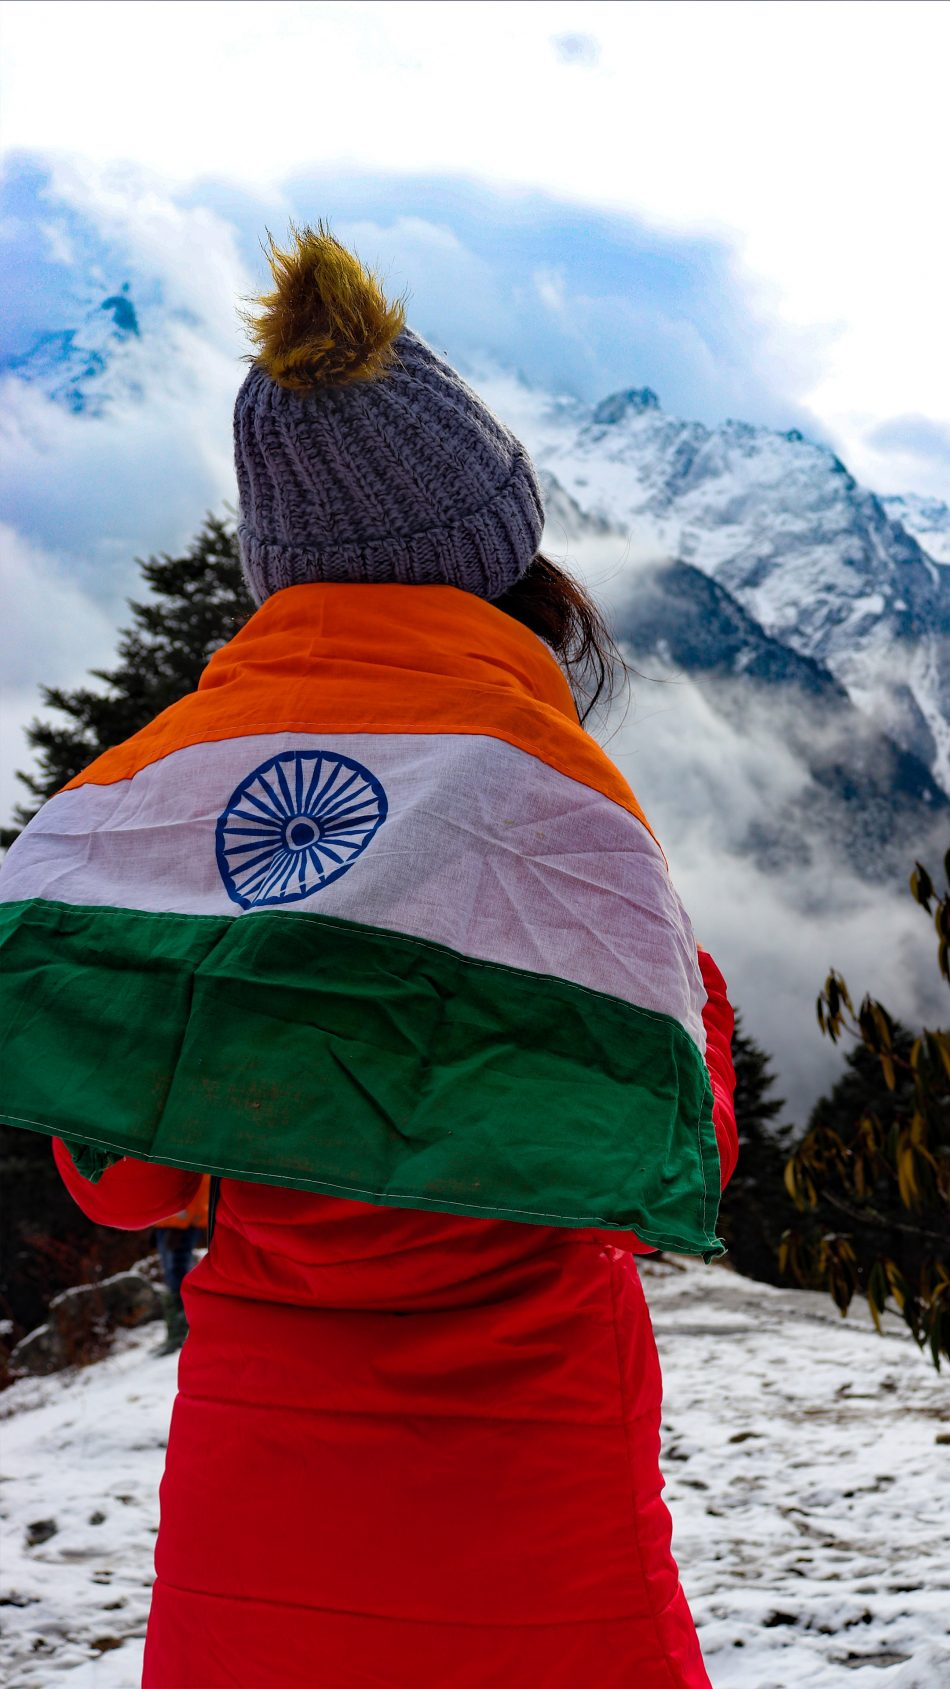 Download Girl Indian Flag Snow Mountains Free Pure 4k Ultra